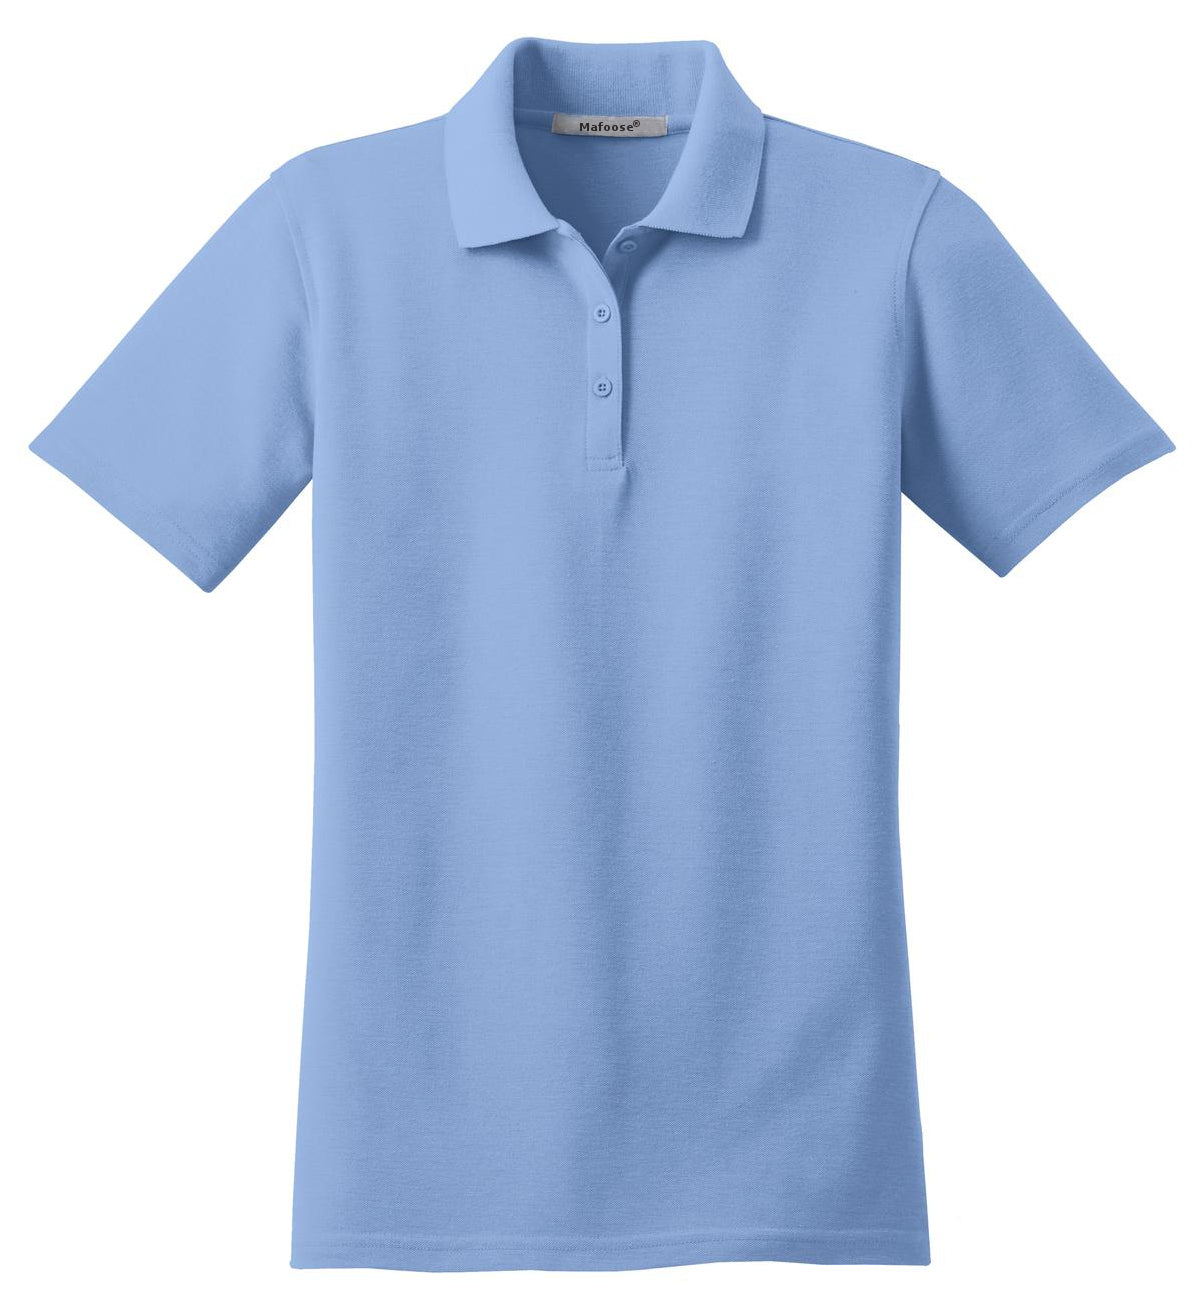 Mafoose Women's Stain Resistant Polo Shirt Light Blue-Front